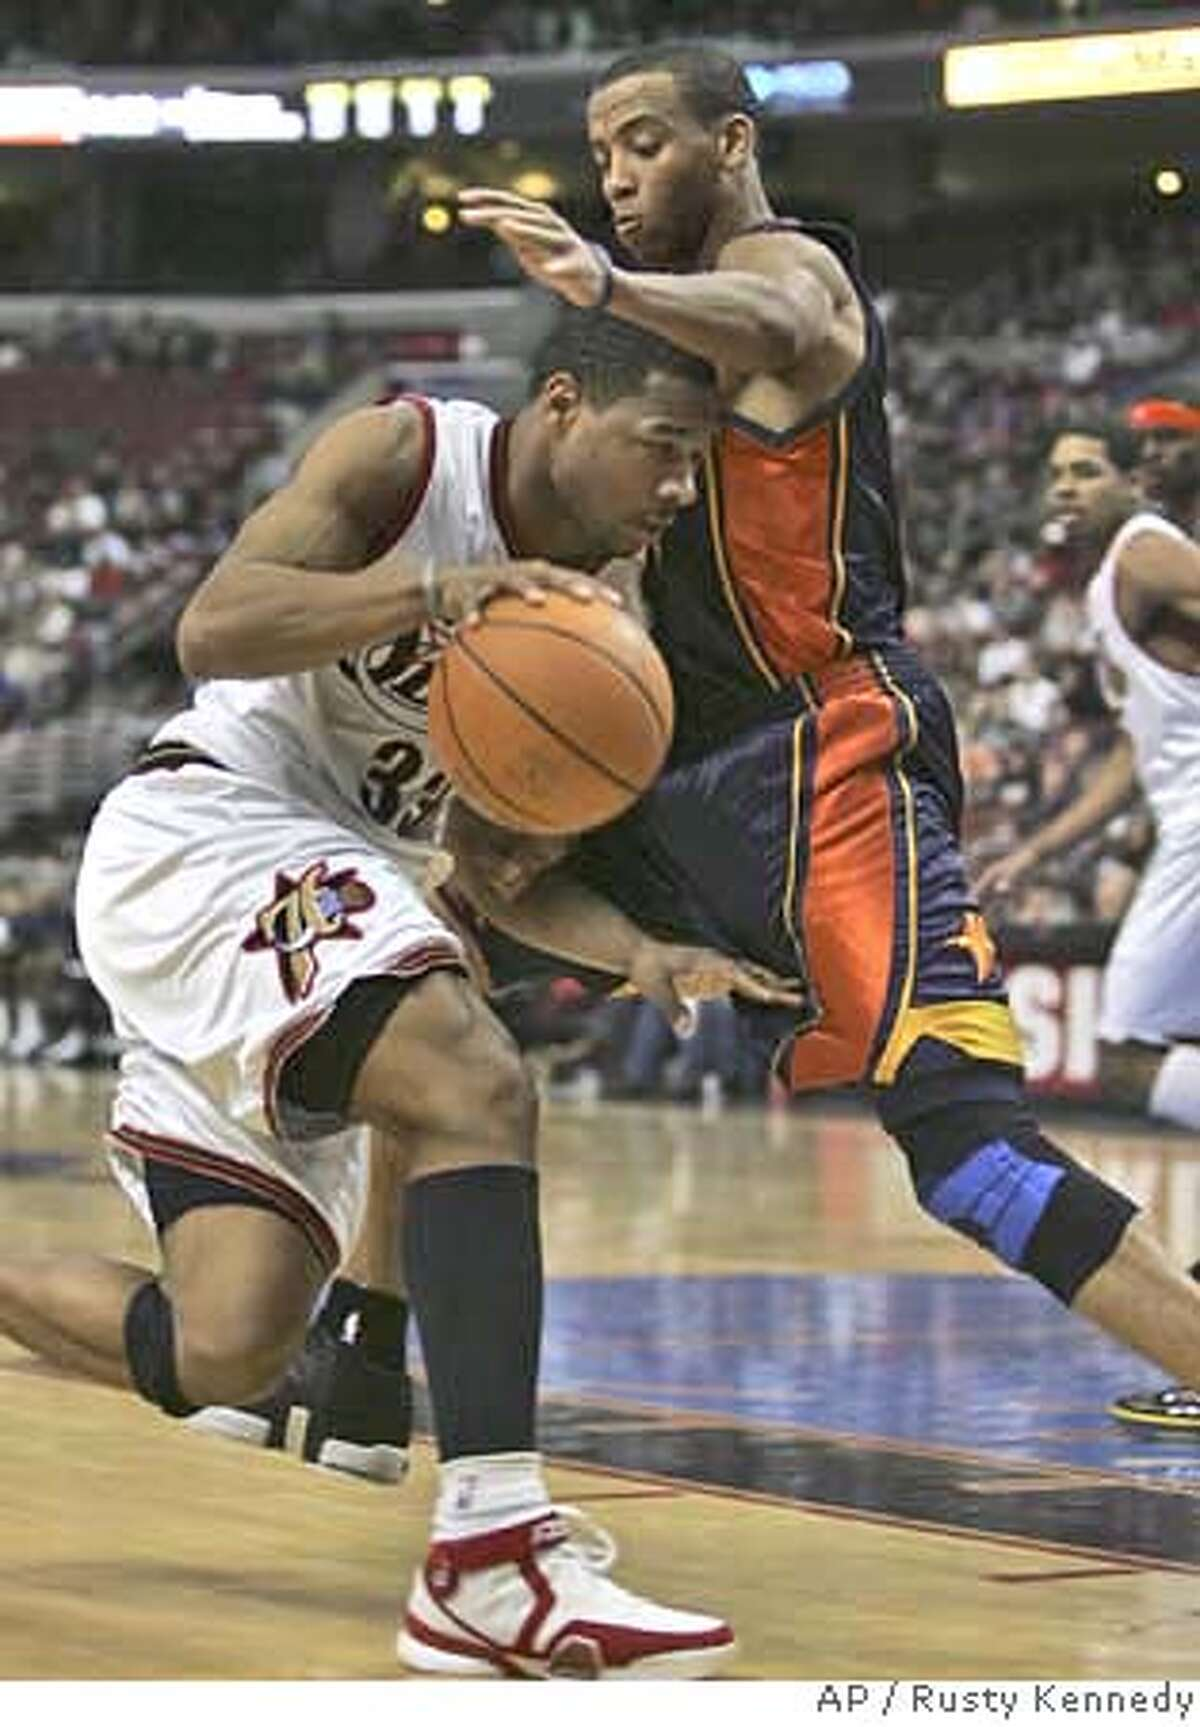 Philadelphia 76ers' Willie Green runs into Golden State Warriors' Monta Ellis during the second half of an NBA basketball game Friday, Feb. 2, 2007, in Philadelphia. (AP Photo/Rusty Kennedy)